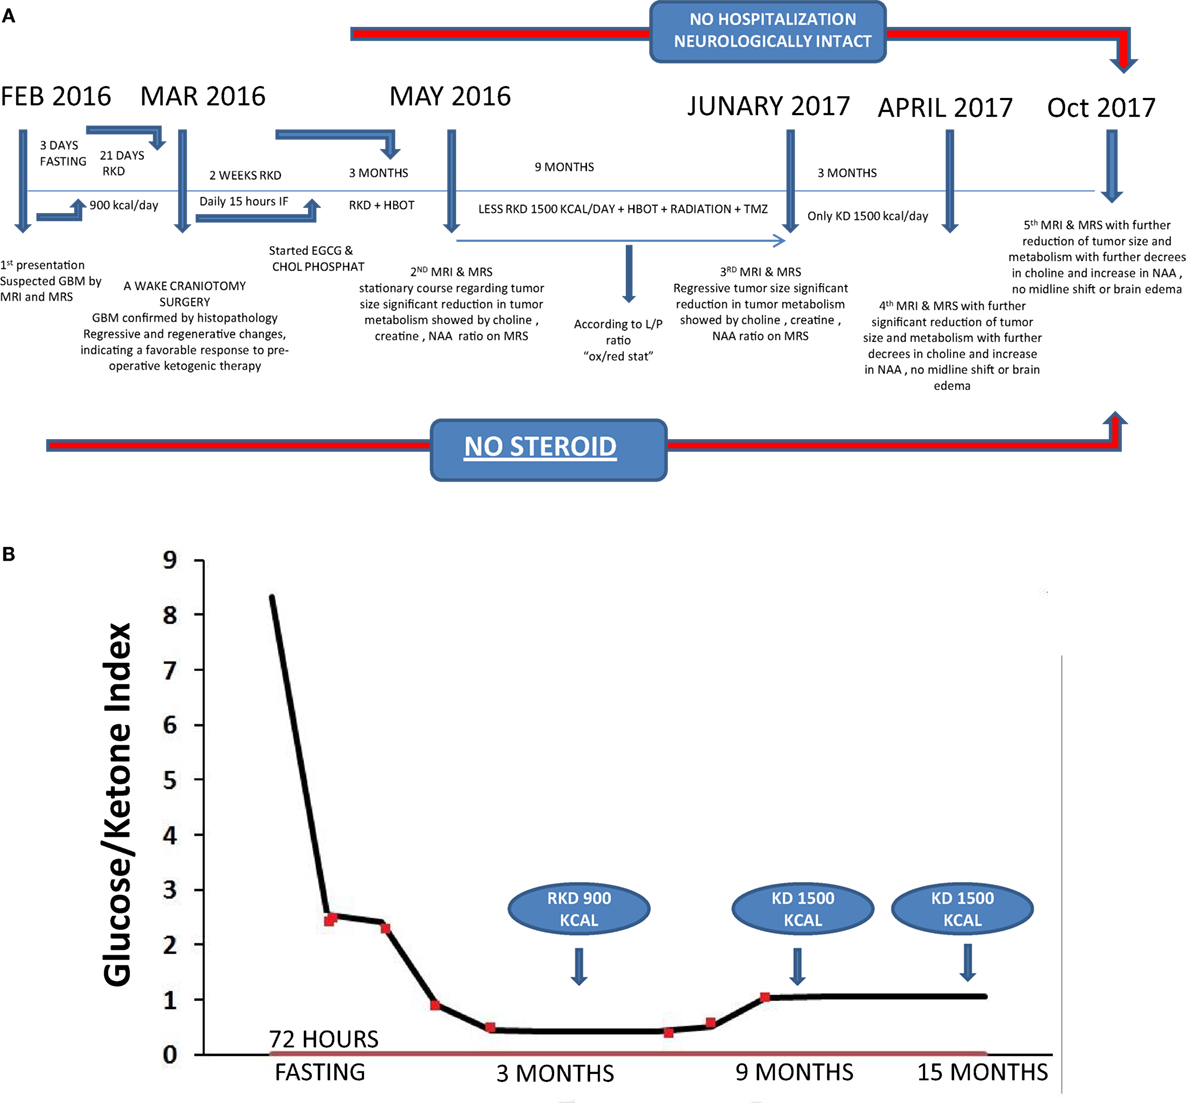 Frontiers | Management of Glioblastoma Multiforme in a